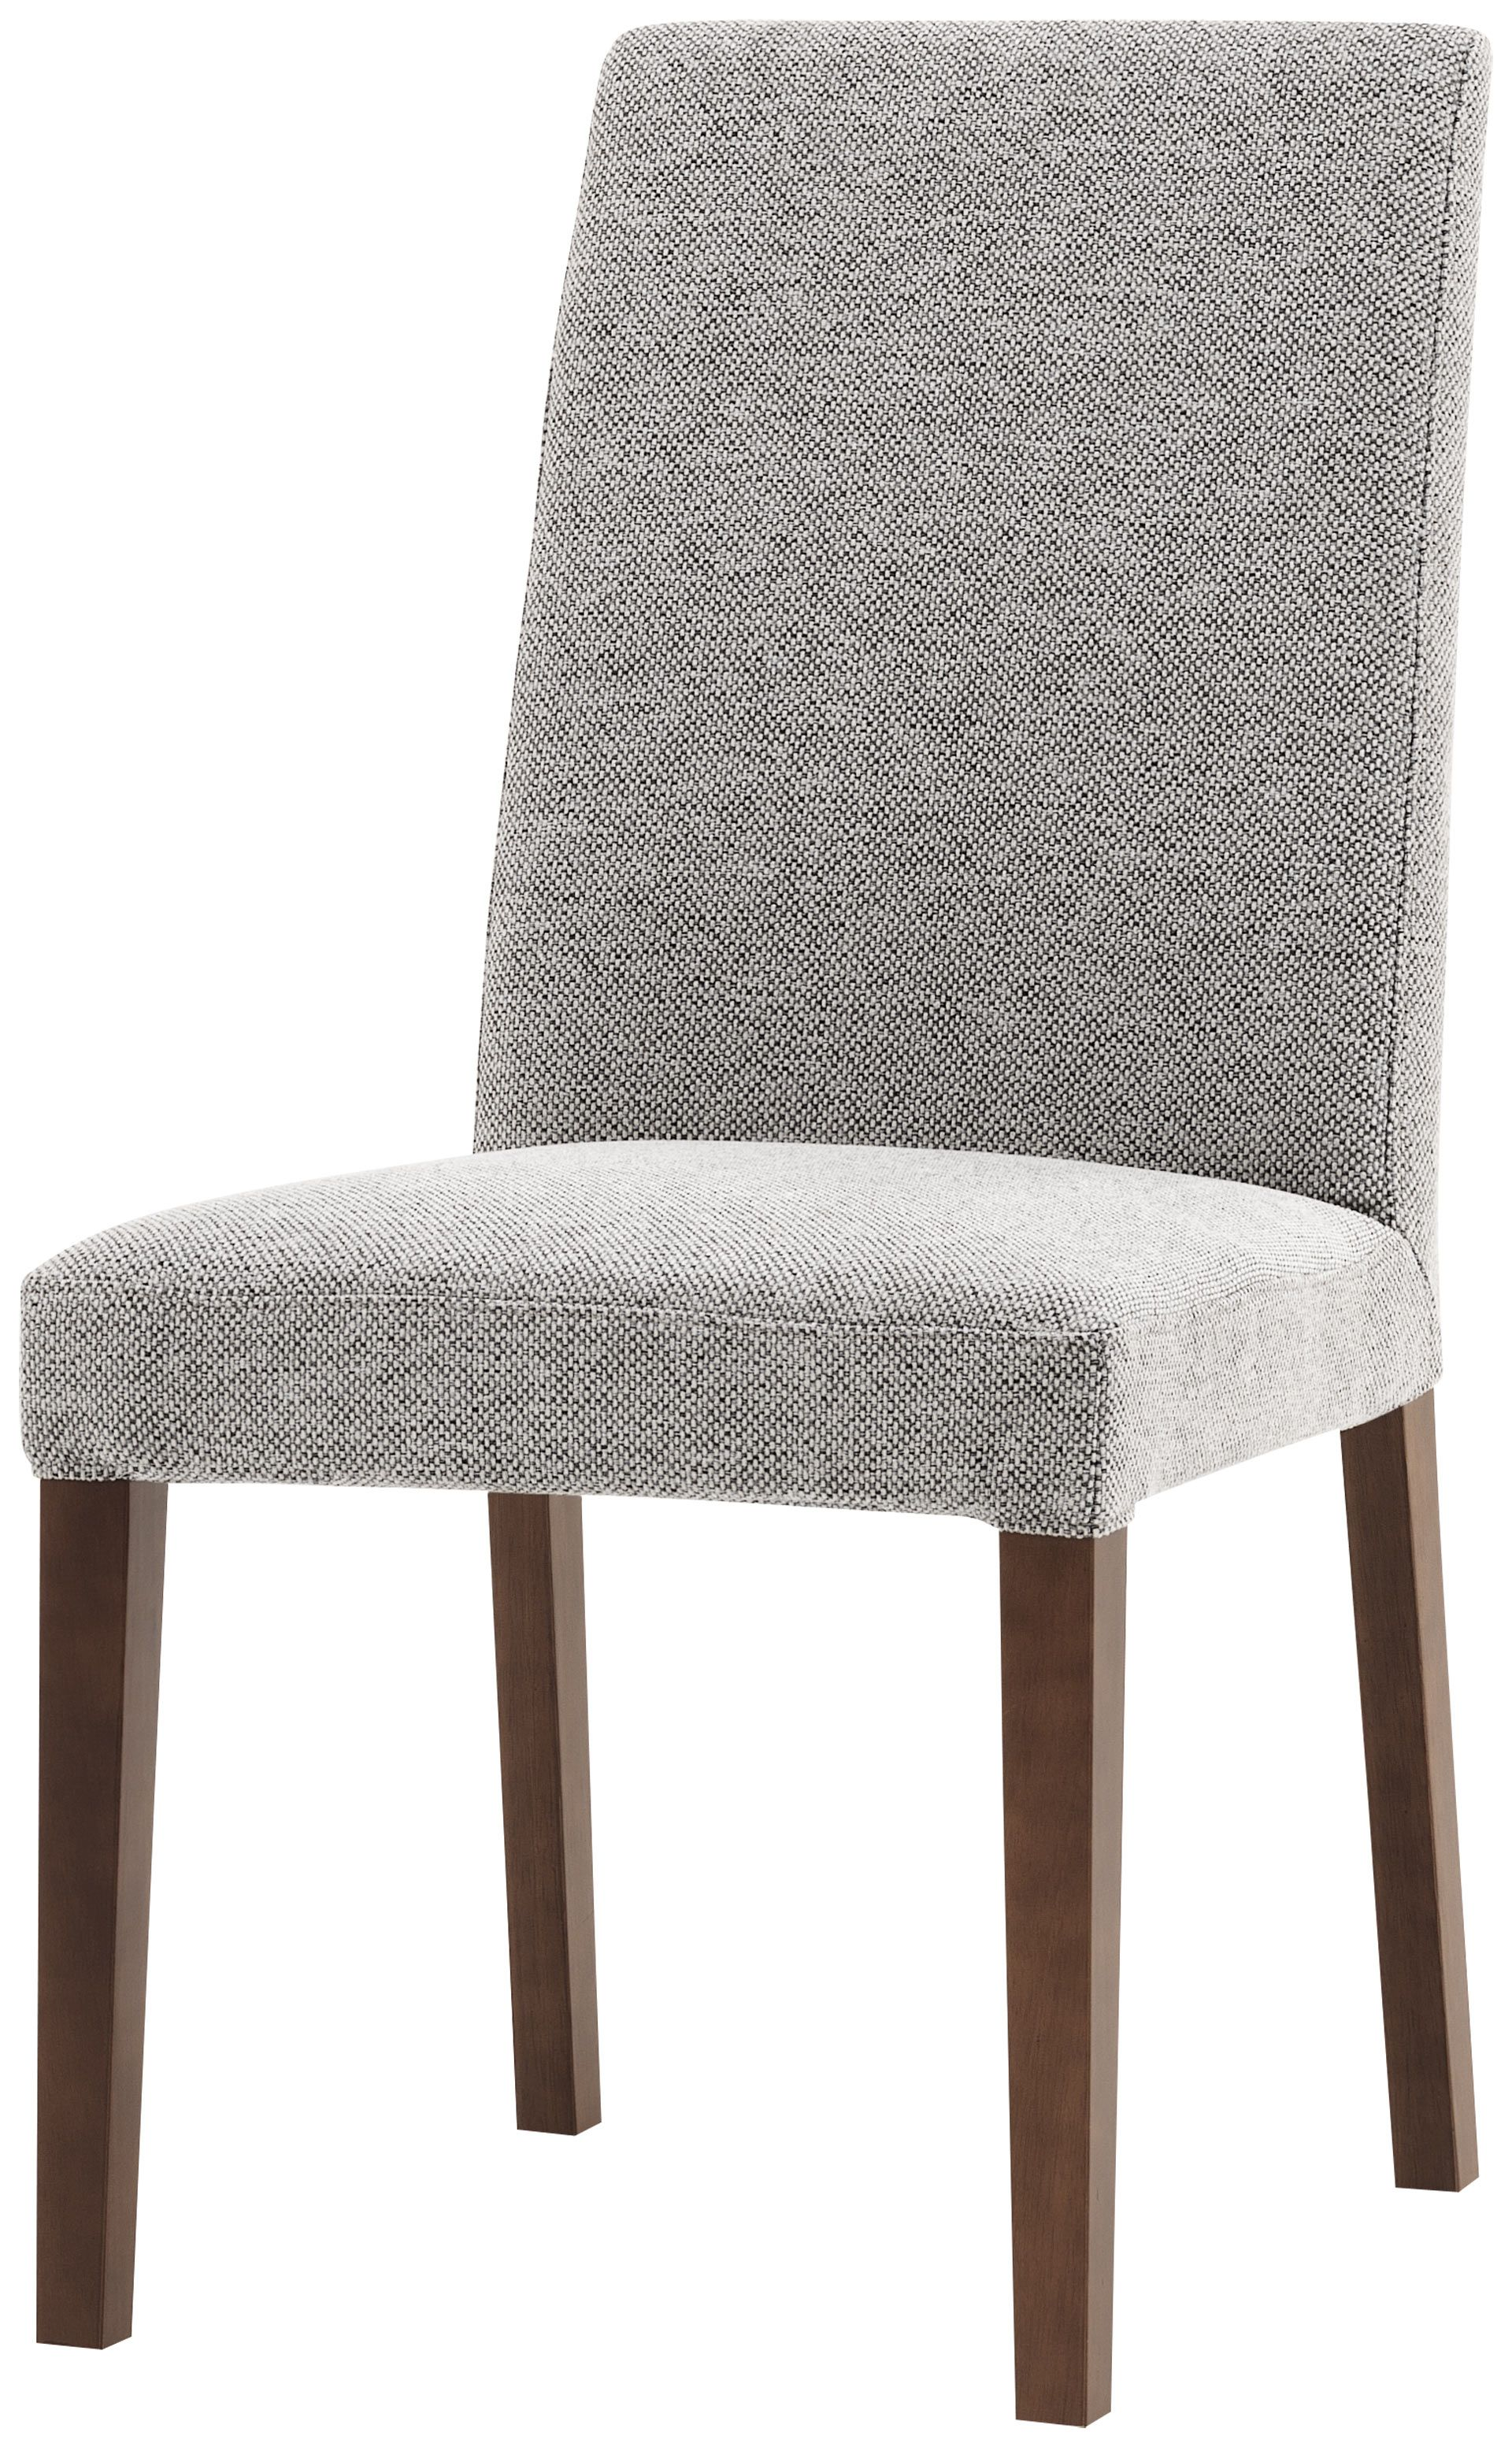 New Genova Chair Available In All Fabrics And Leathers As Shown